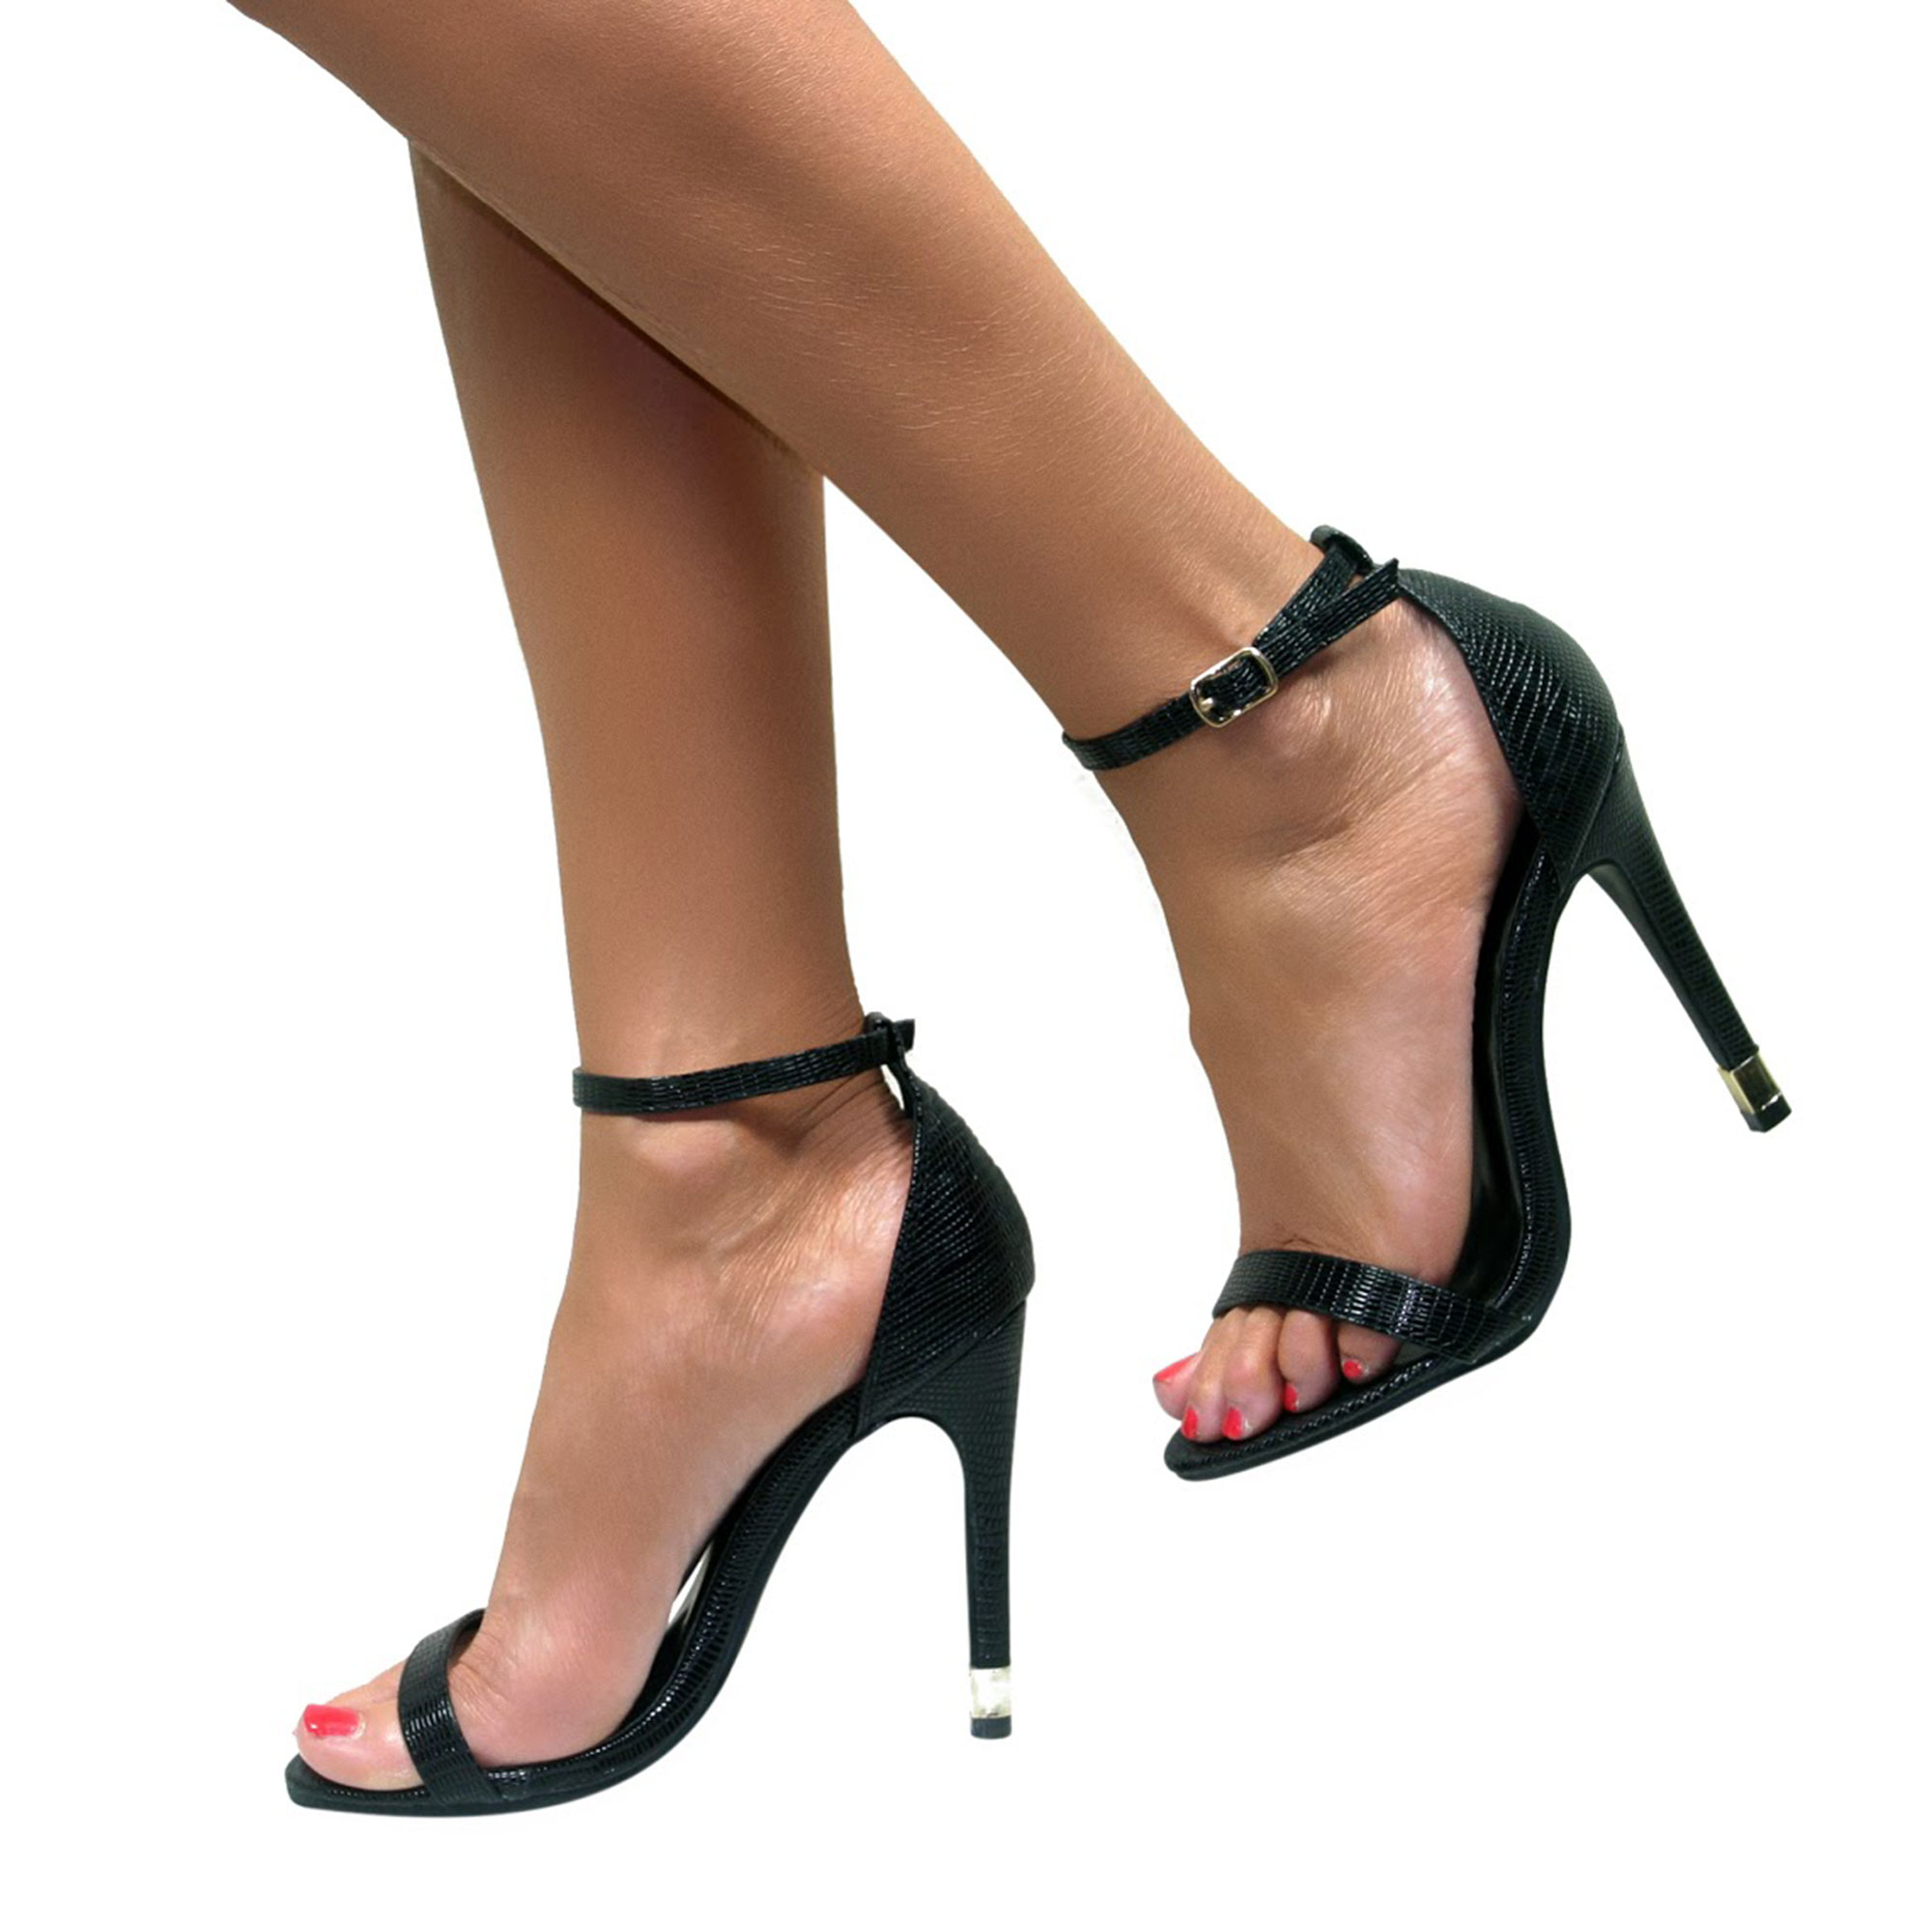 Ladies Strappy Heels - Is Heel